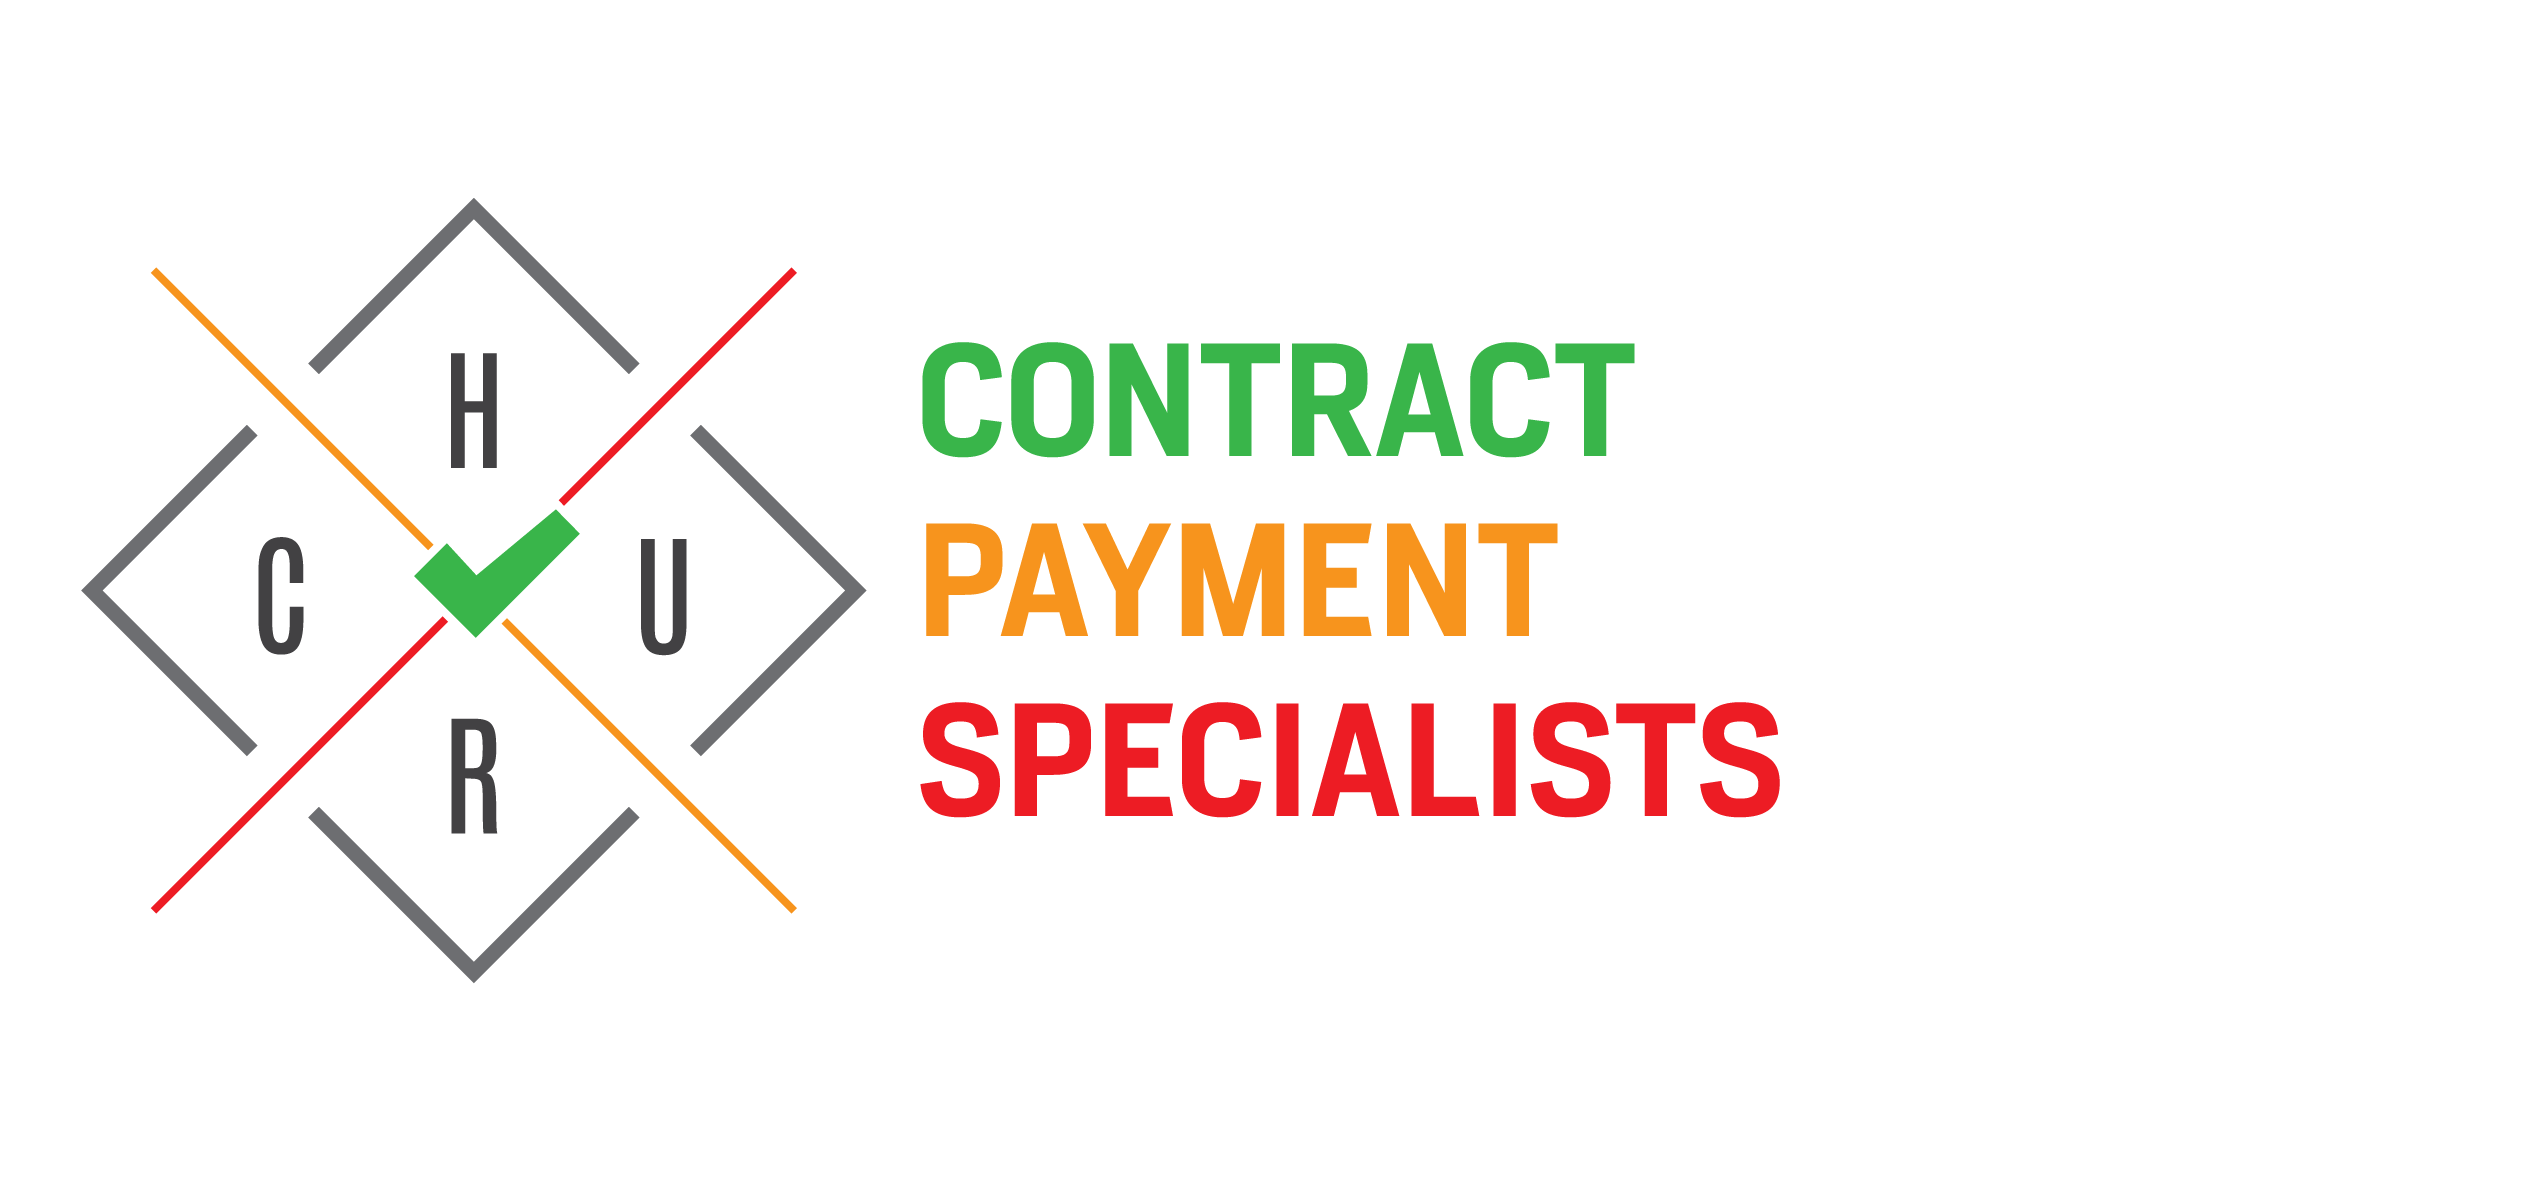 HCRU Payment Specialists